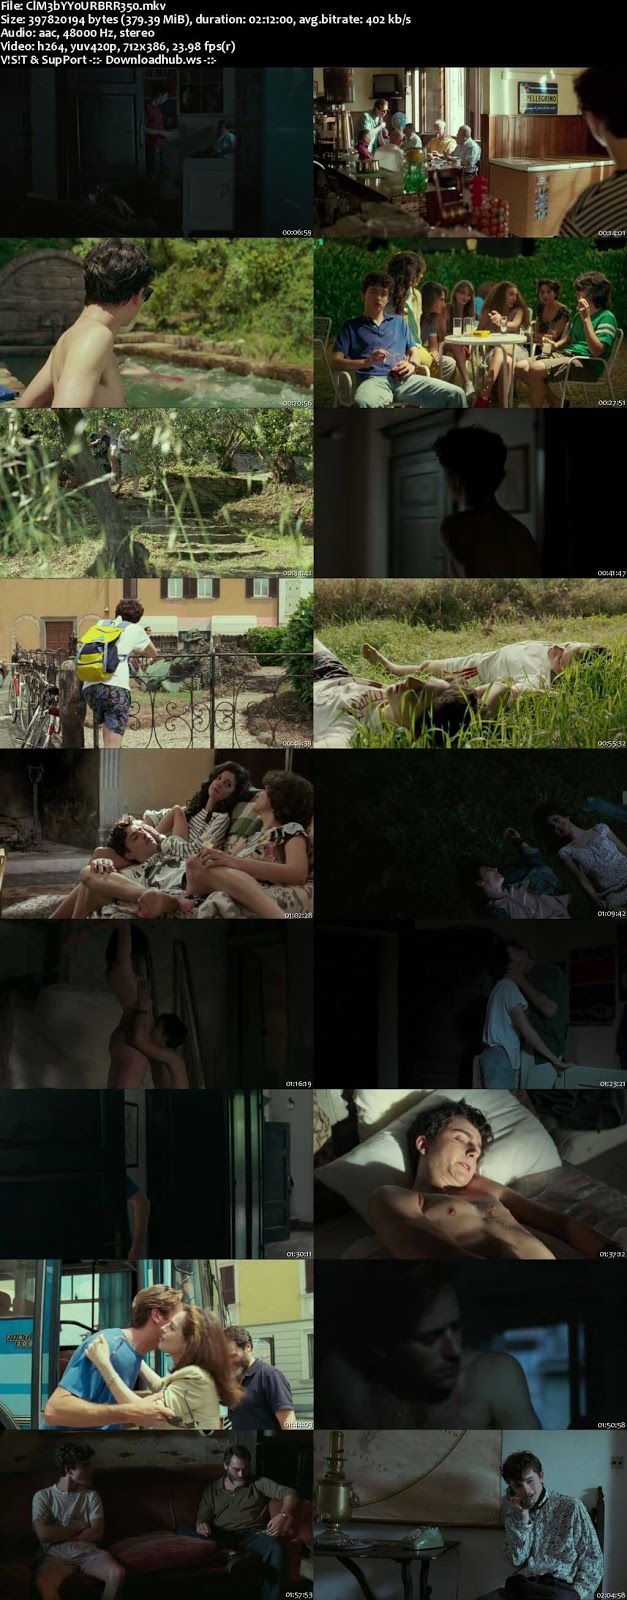 Call Me by Your Name 2017 English 480p BRRip ESubs